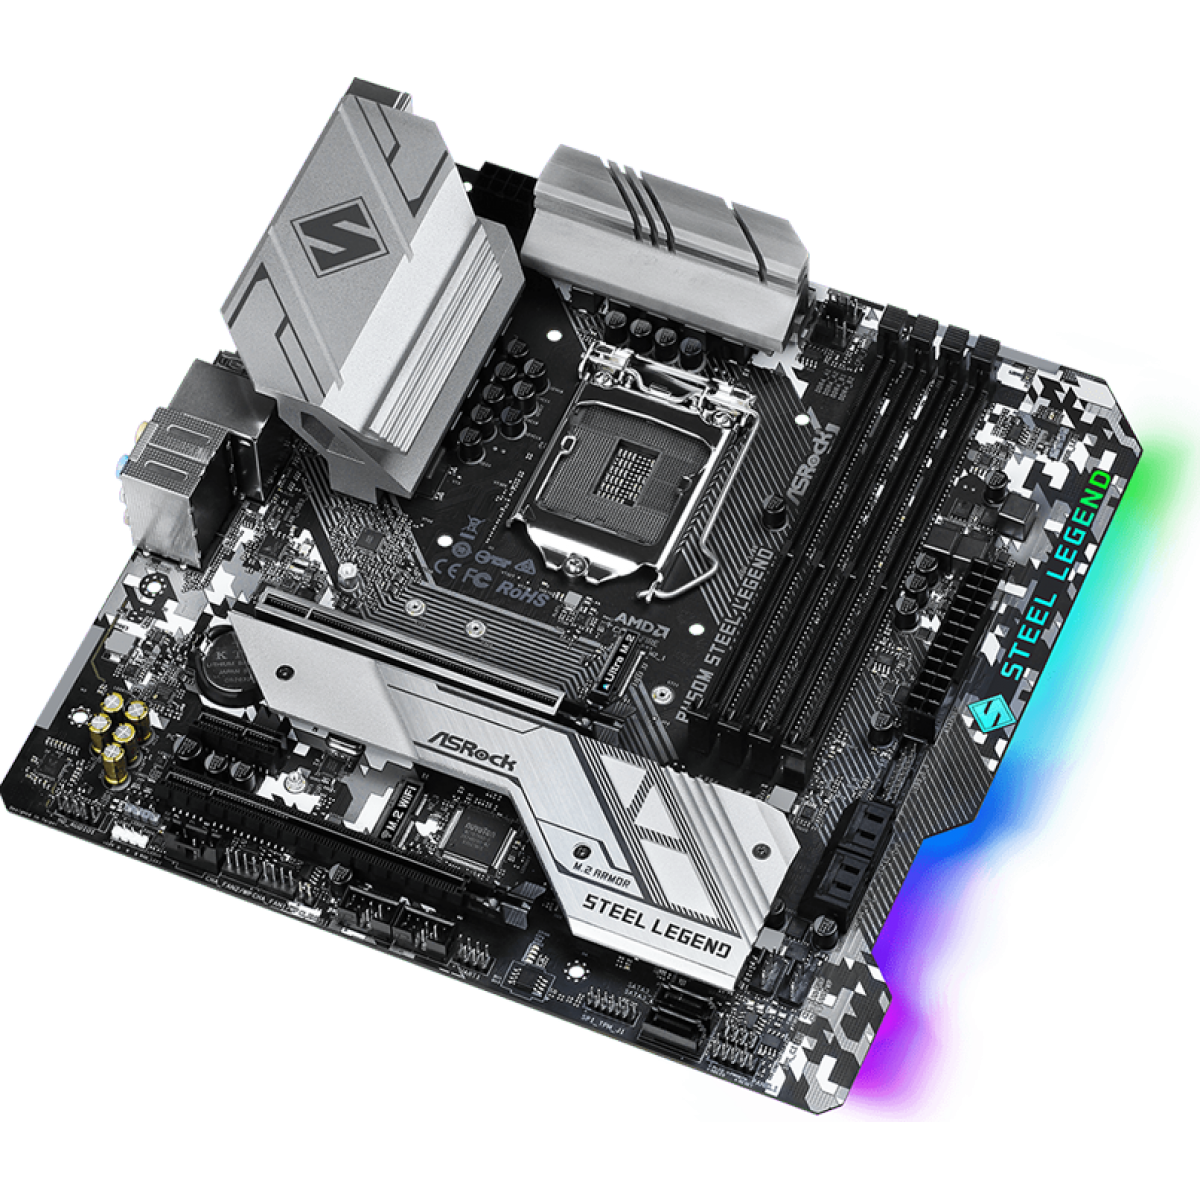 Placa Mãe AsRock B460M Steel Legend,Chipset B460M, Intel LGA 1200, mATX, DDR4